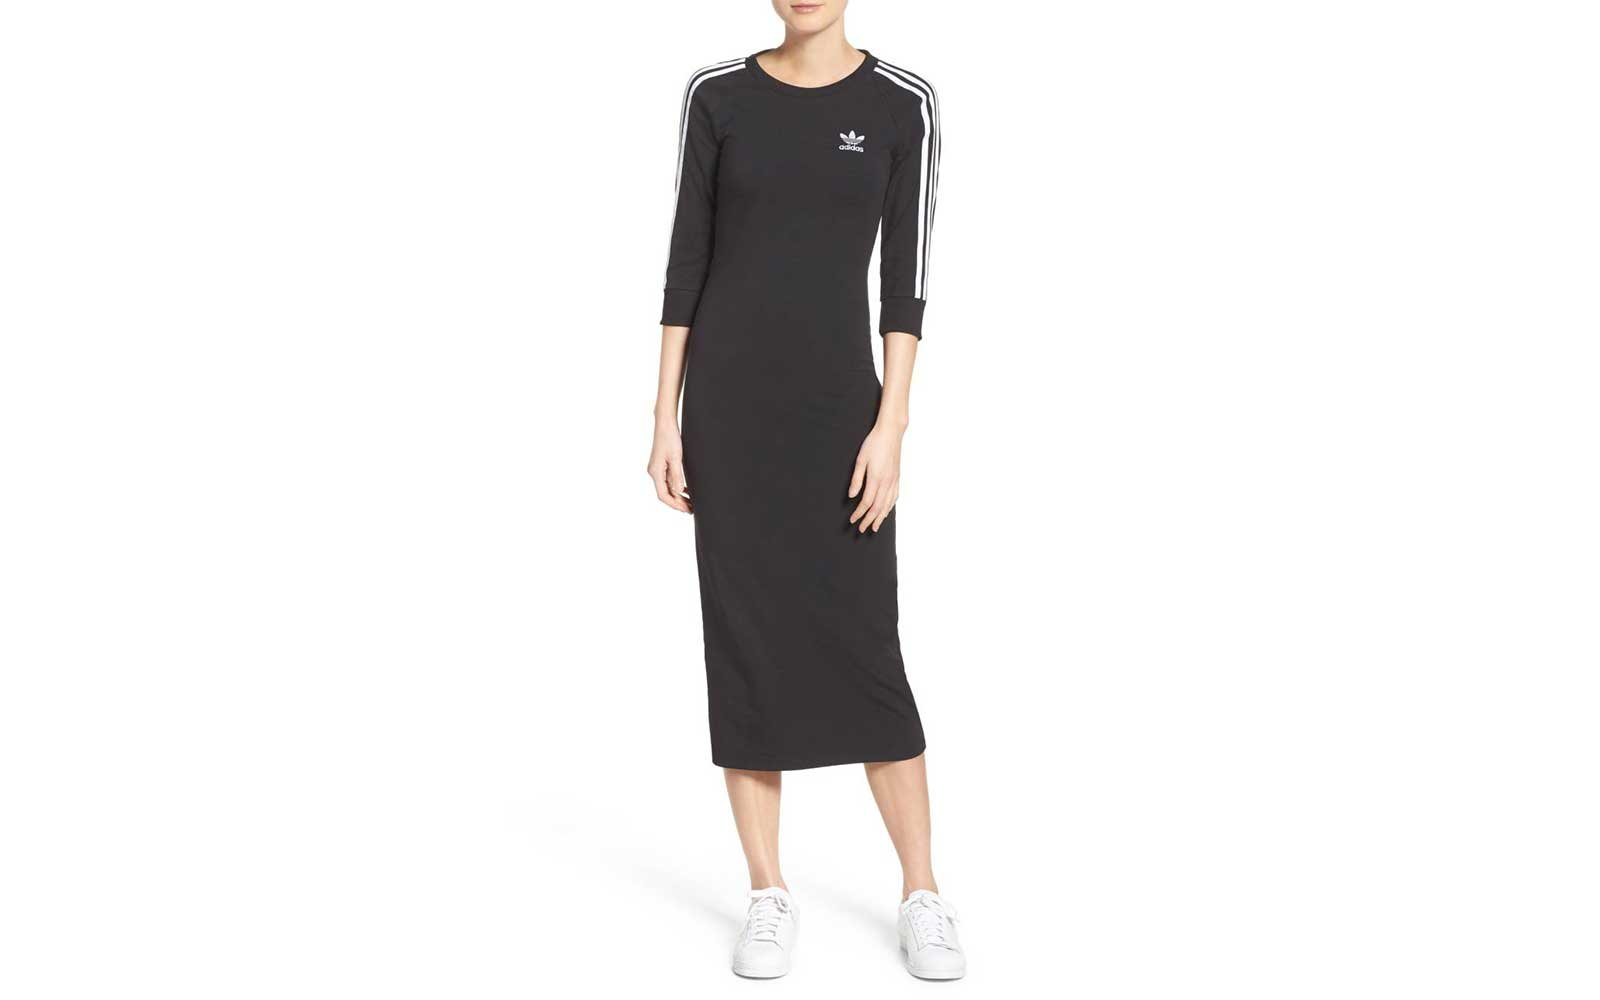 Adidas Dress for Travel